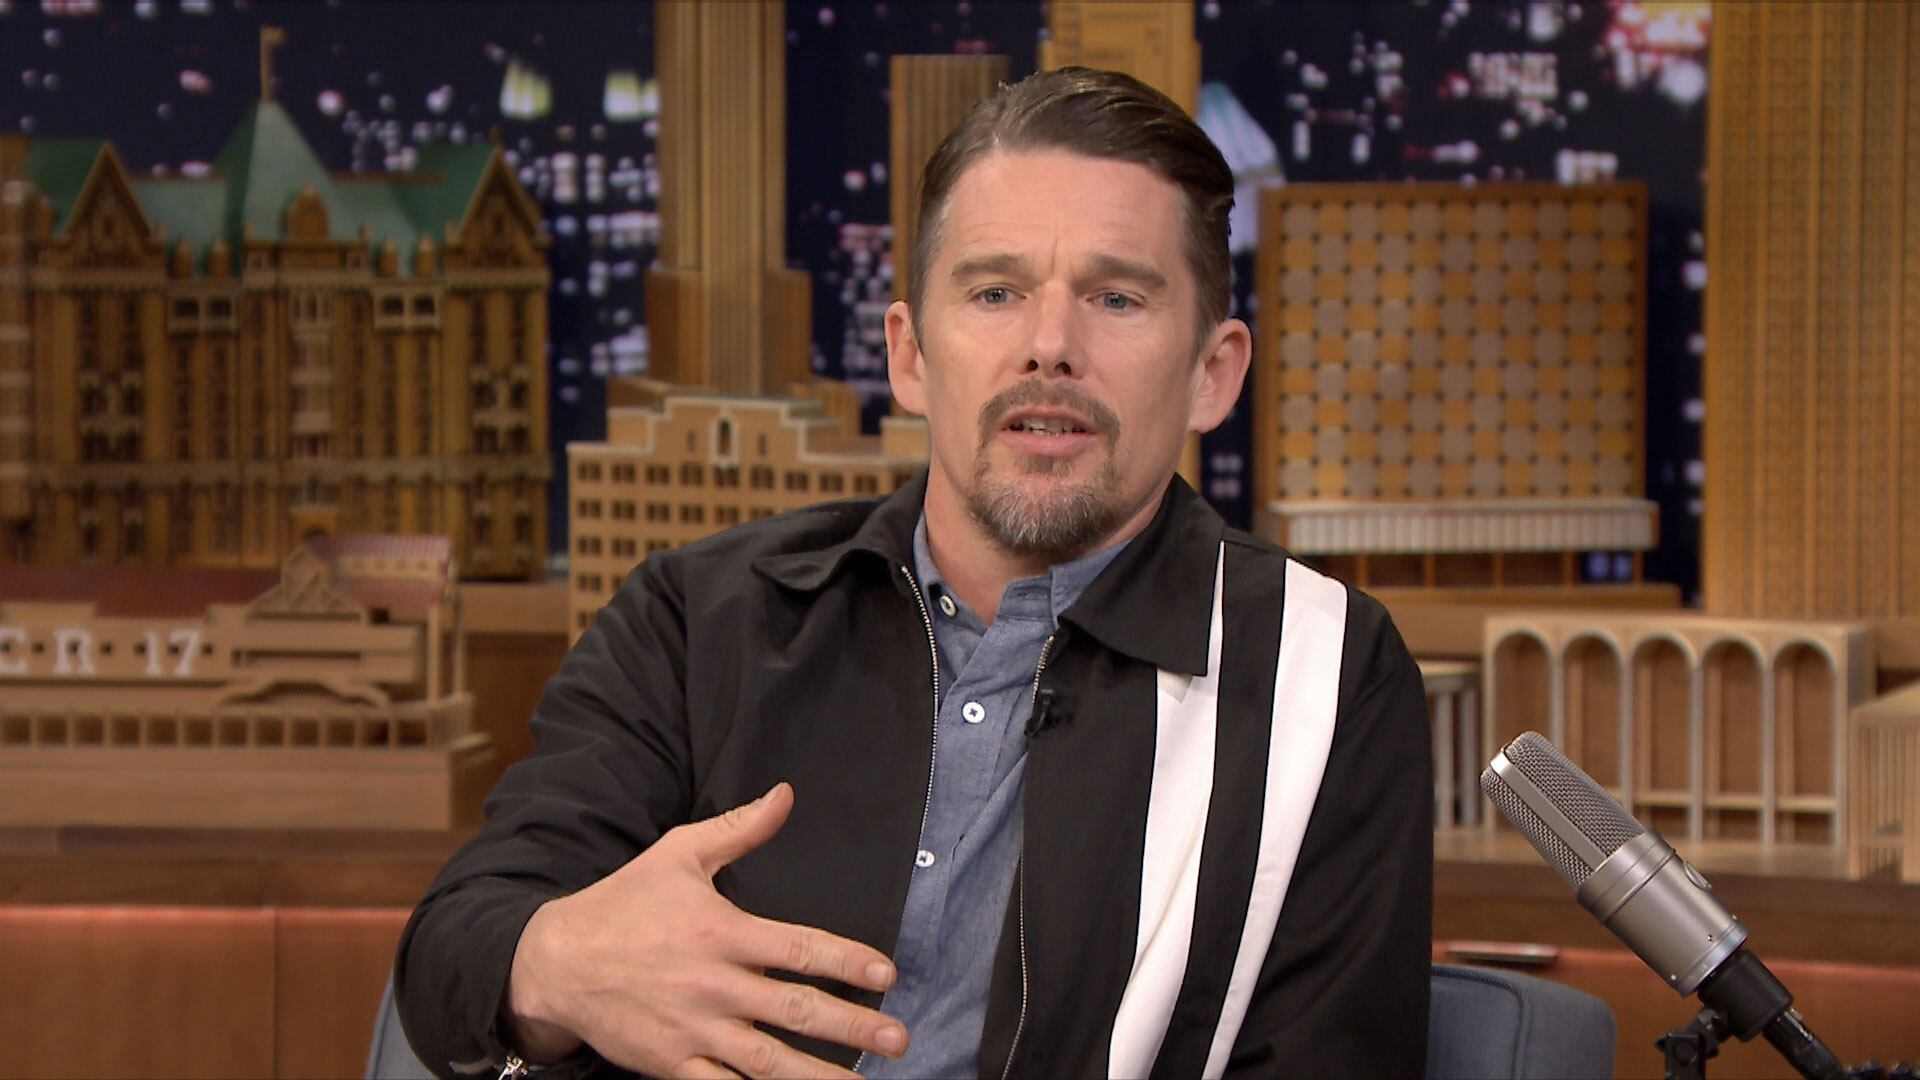 Ethan Hawke Uses Knights to Explain Life Rules to Kids